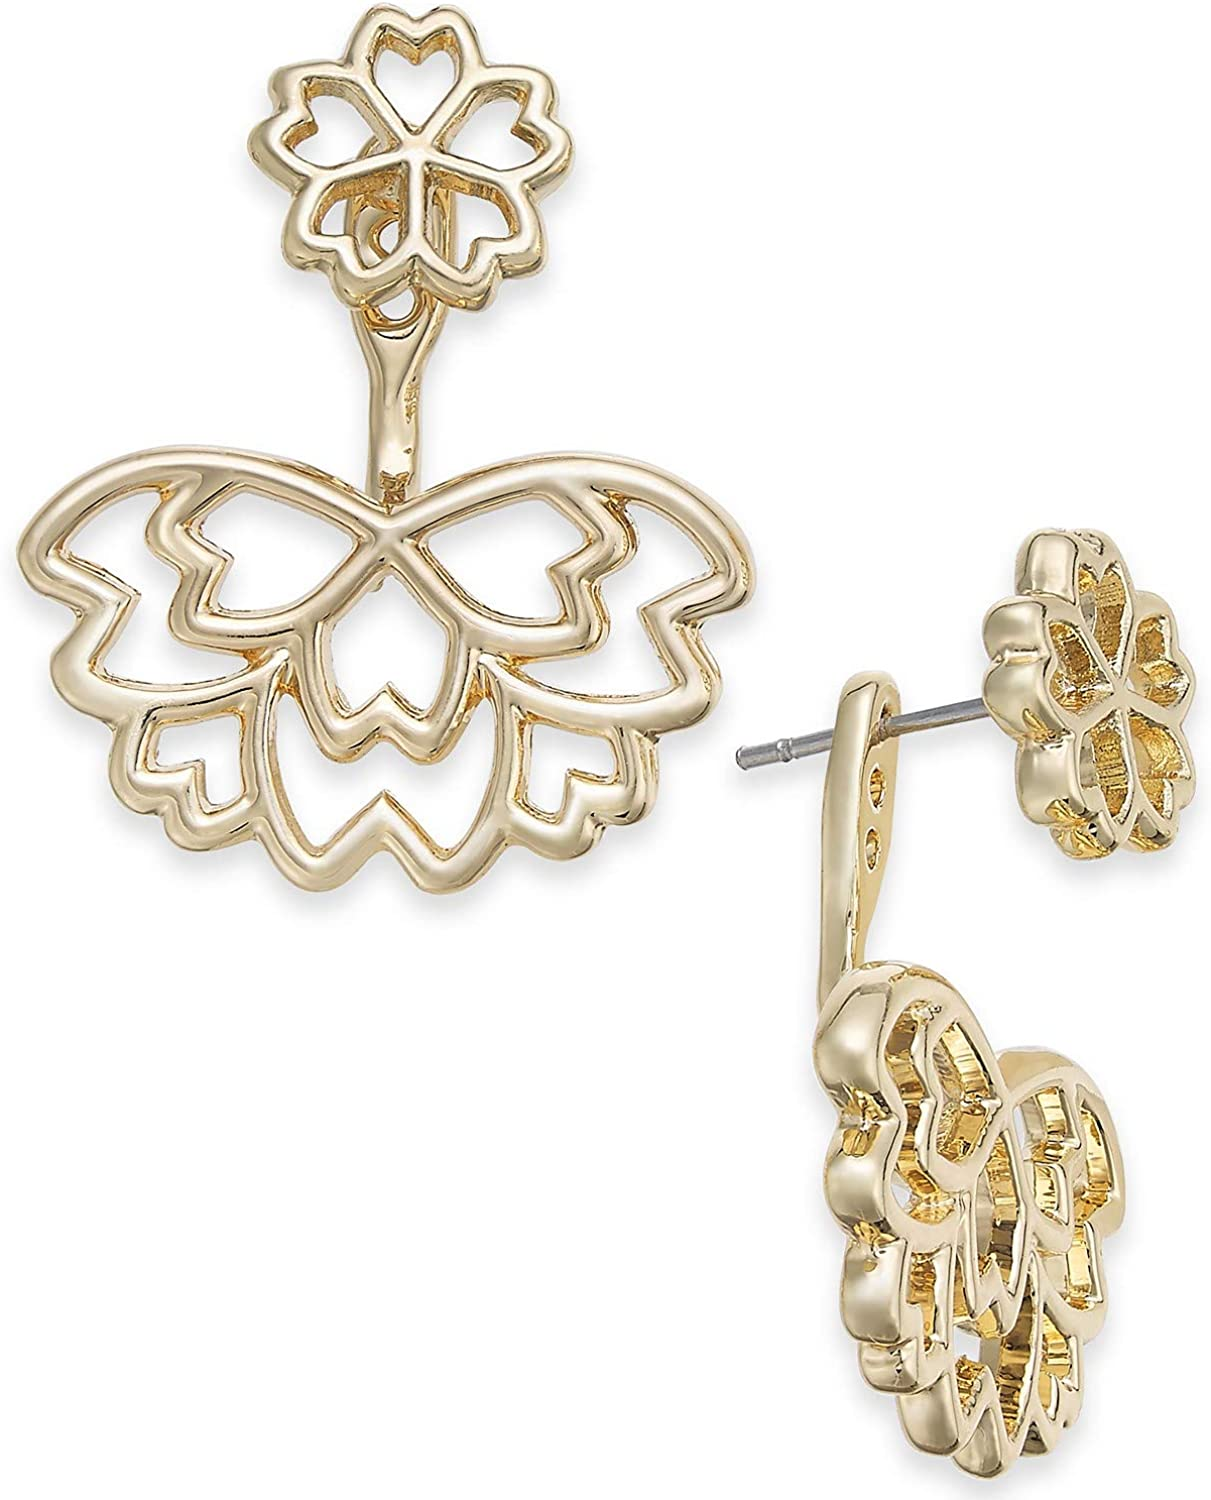 INC International Concepts I.N.C. Flower Jacket Earrin Gold-Tone Max 76% OFF security